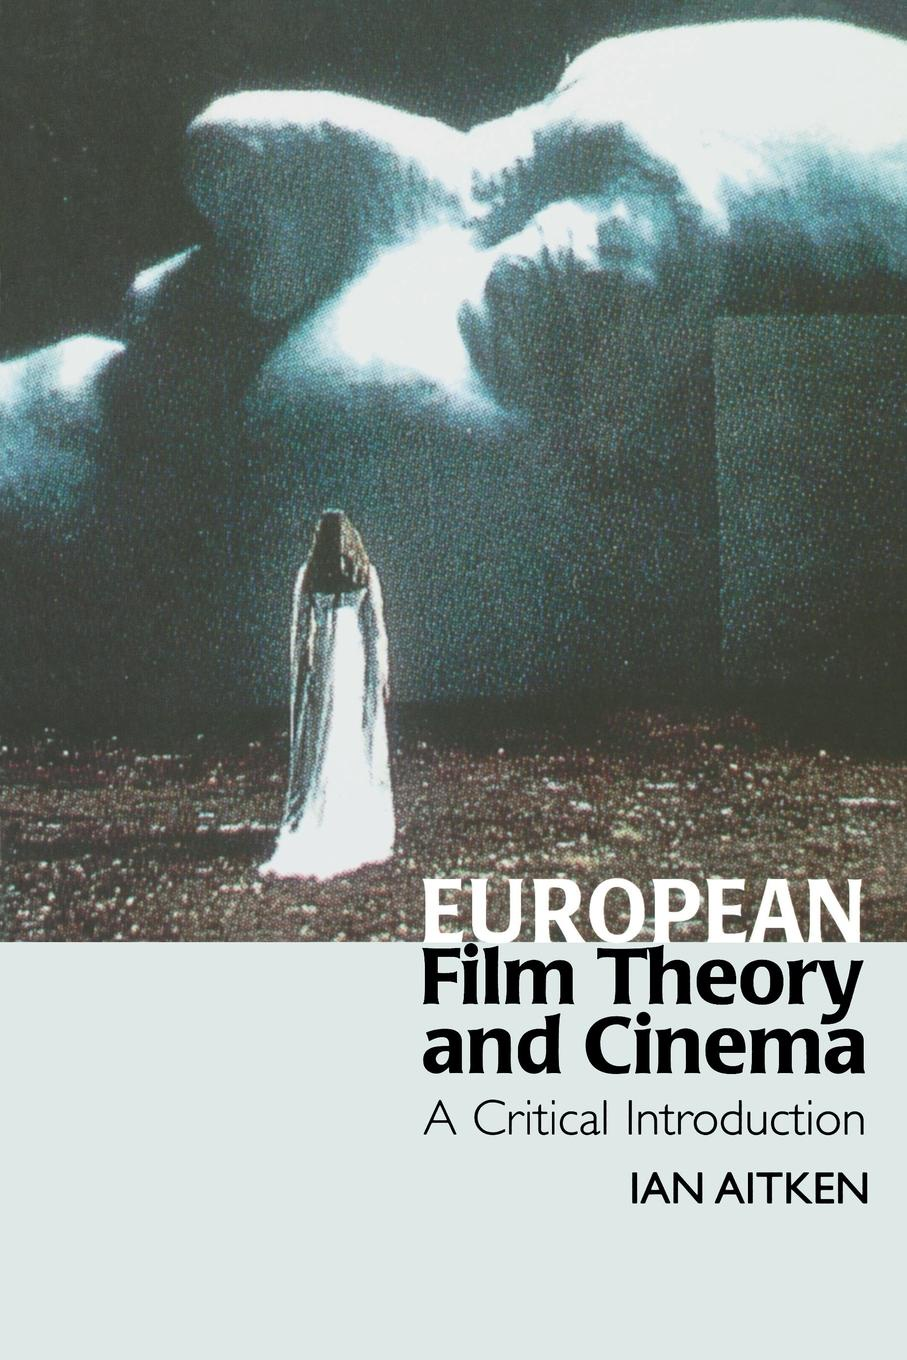 цены на Ian Aitken European Film Theory and Cinema. A Critical Introduction  в интернет-магазинах